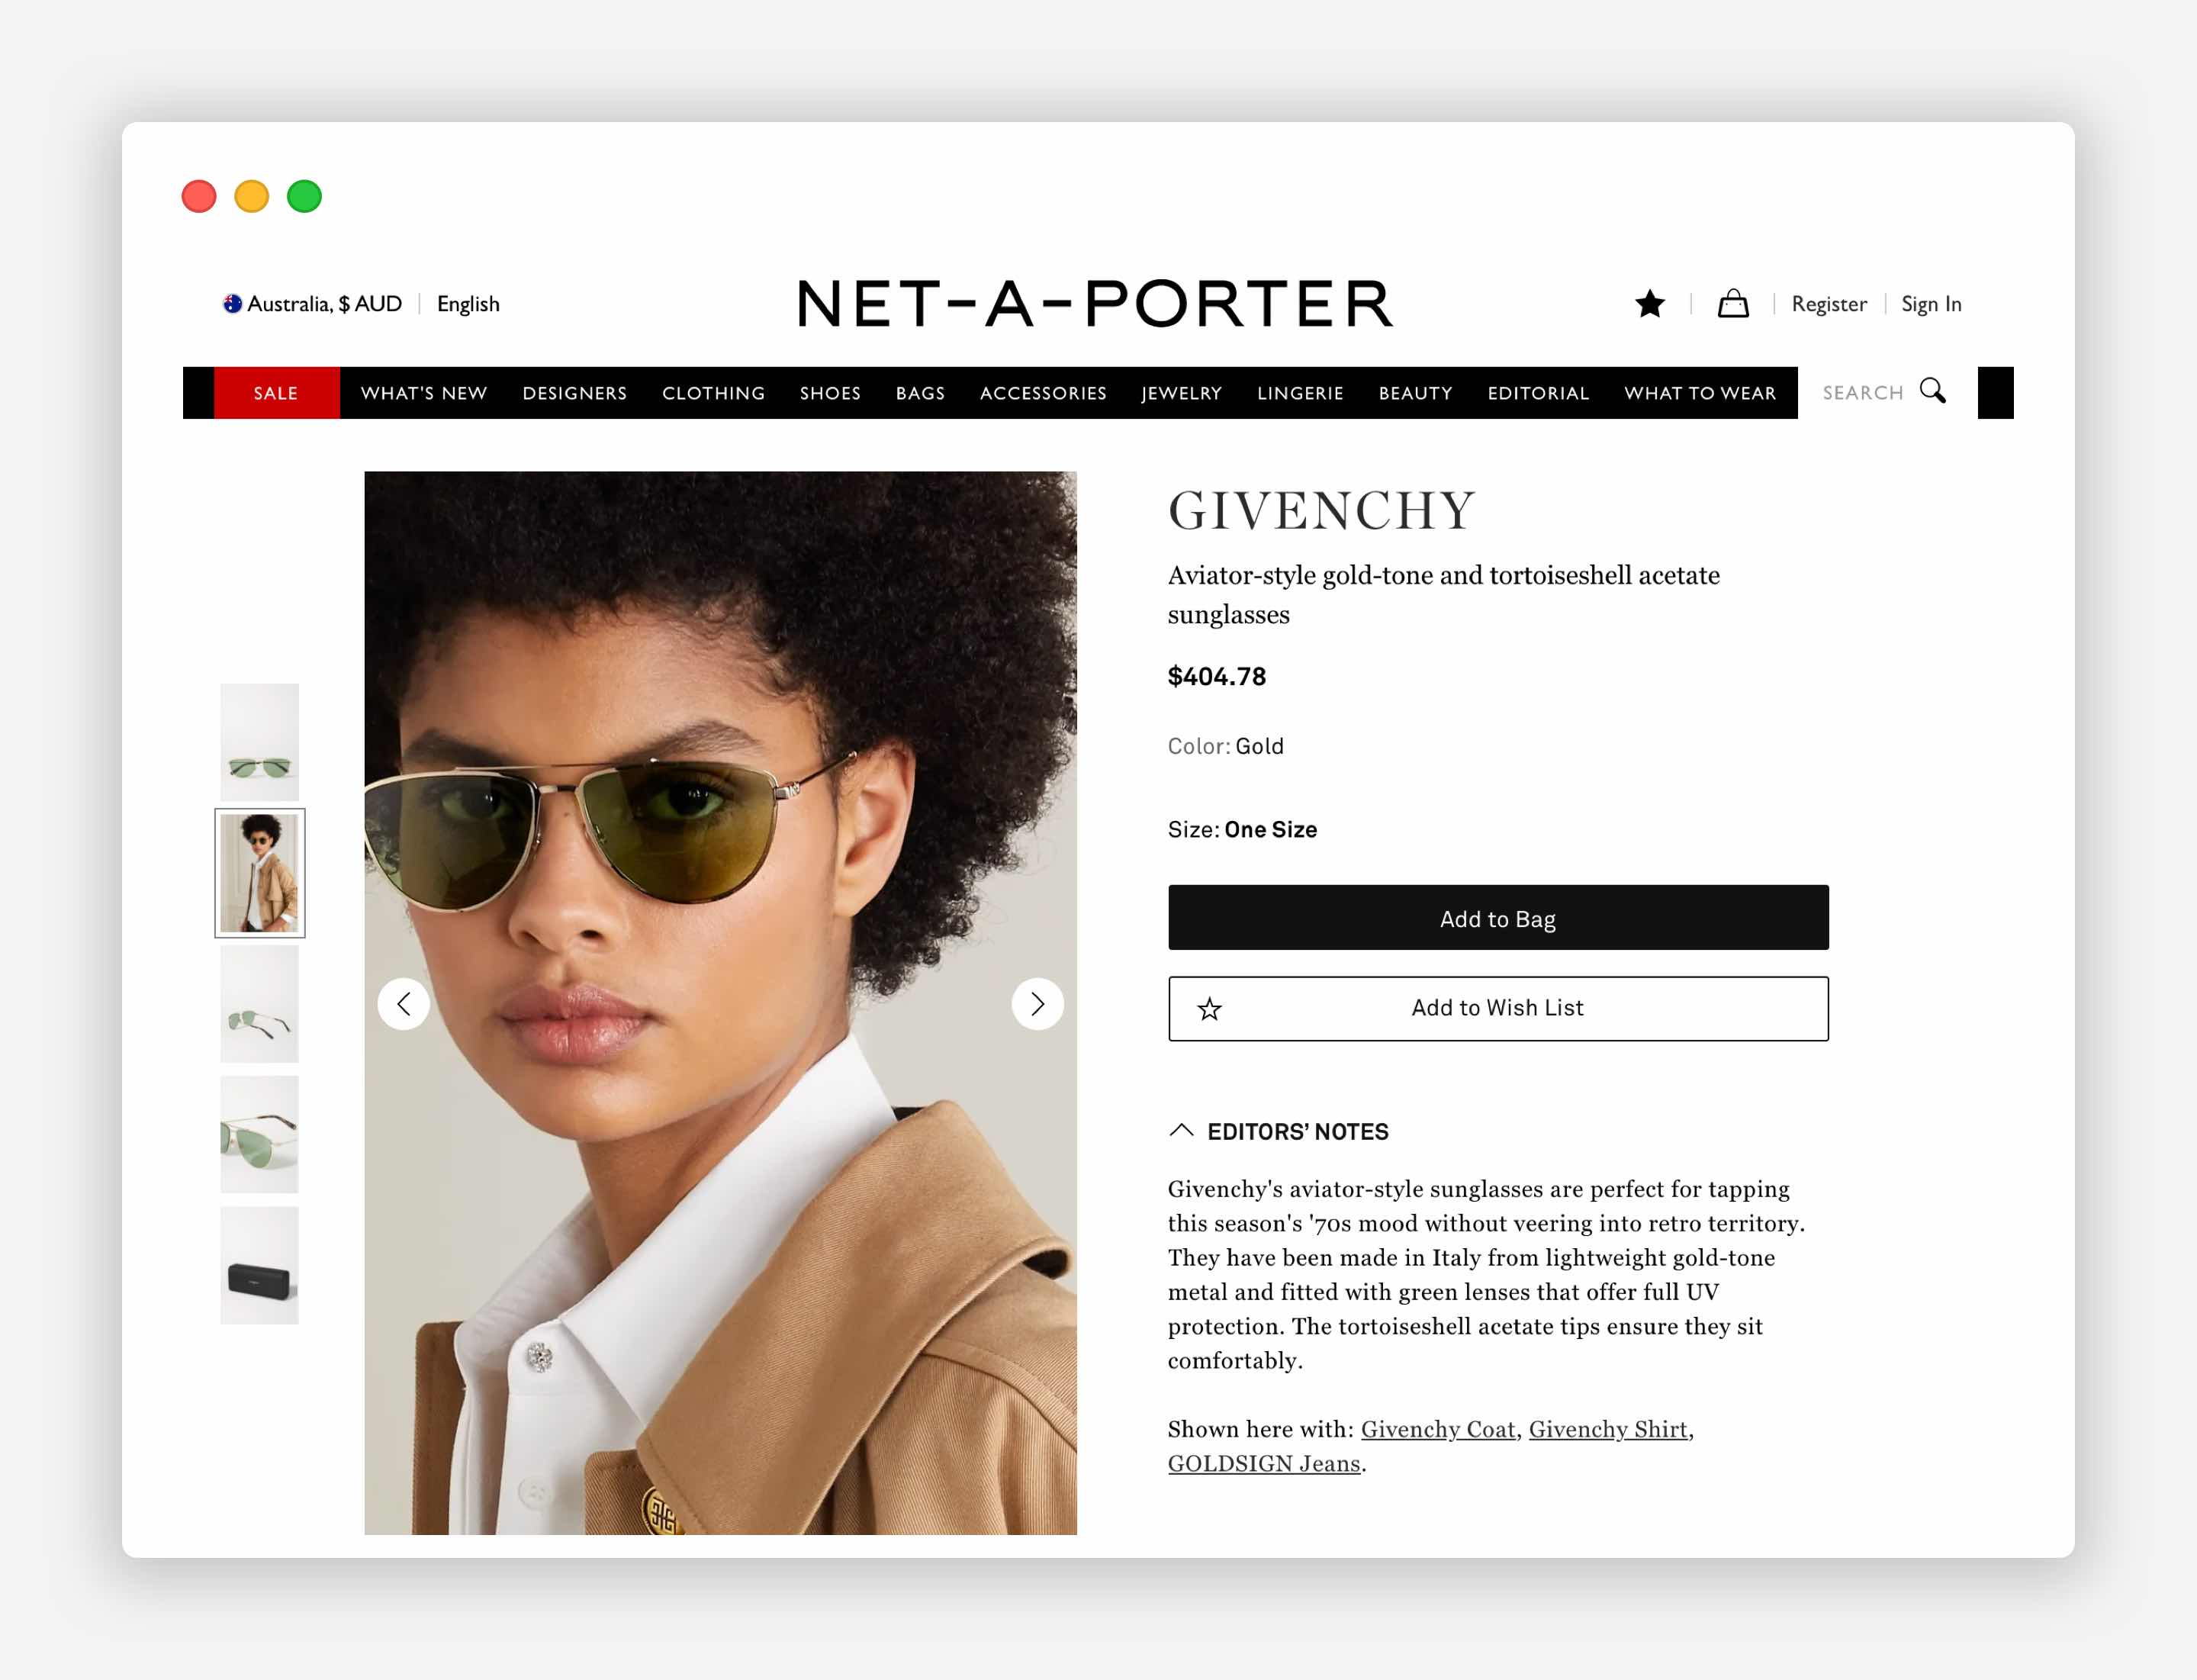 Product image and Product Description on the product page. The Net-a-porter example